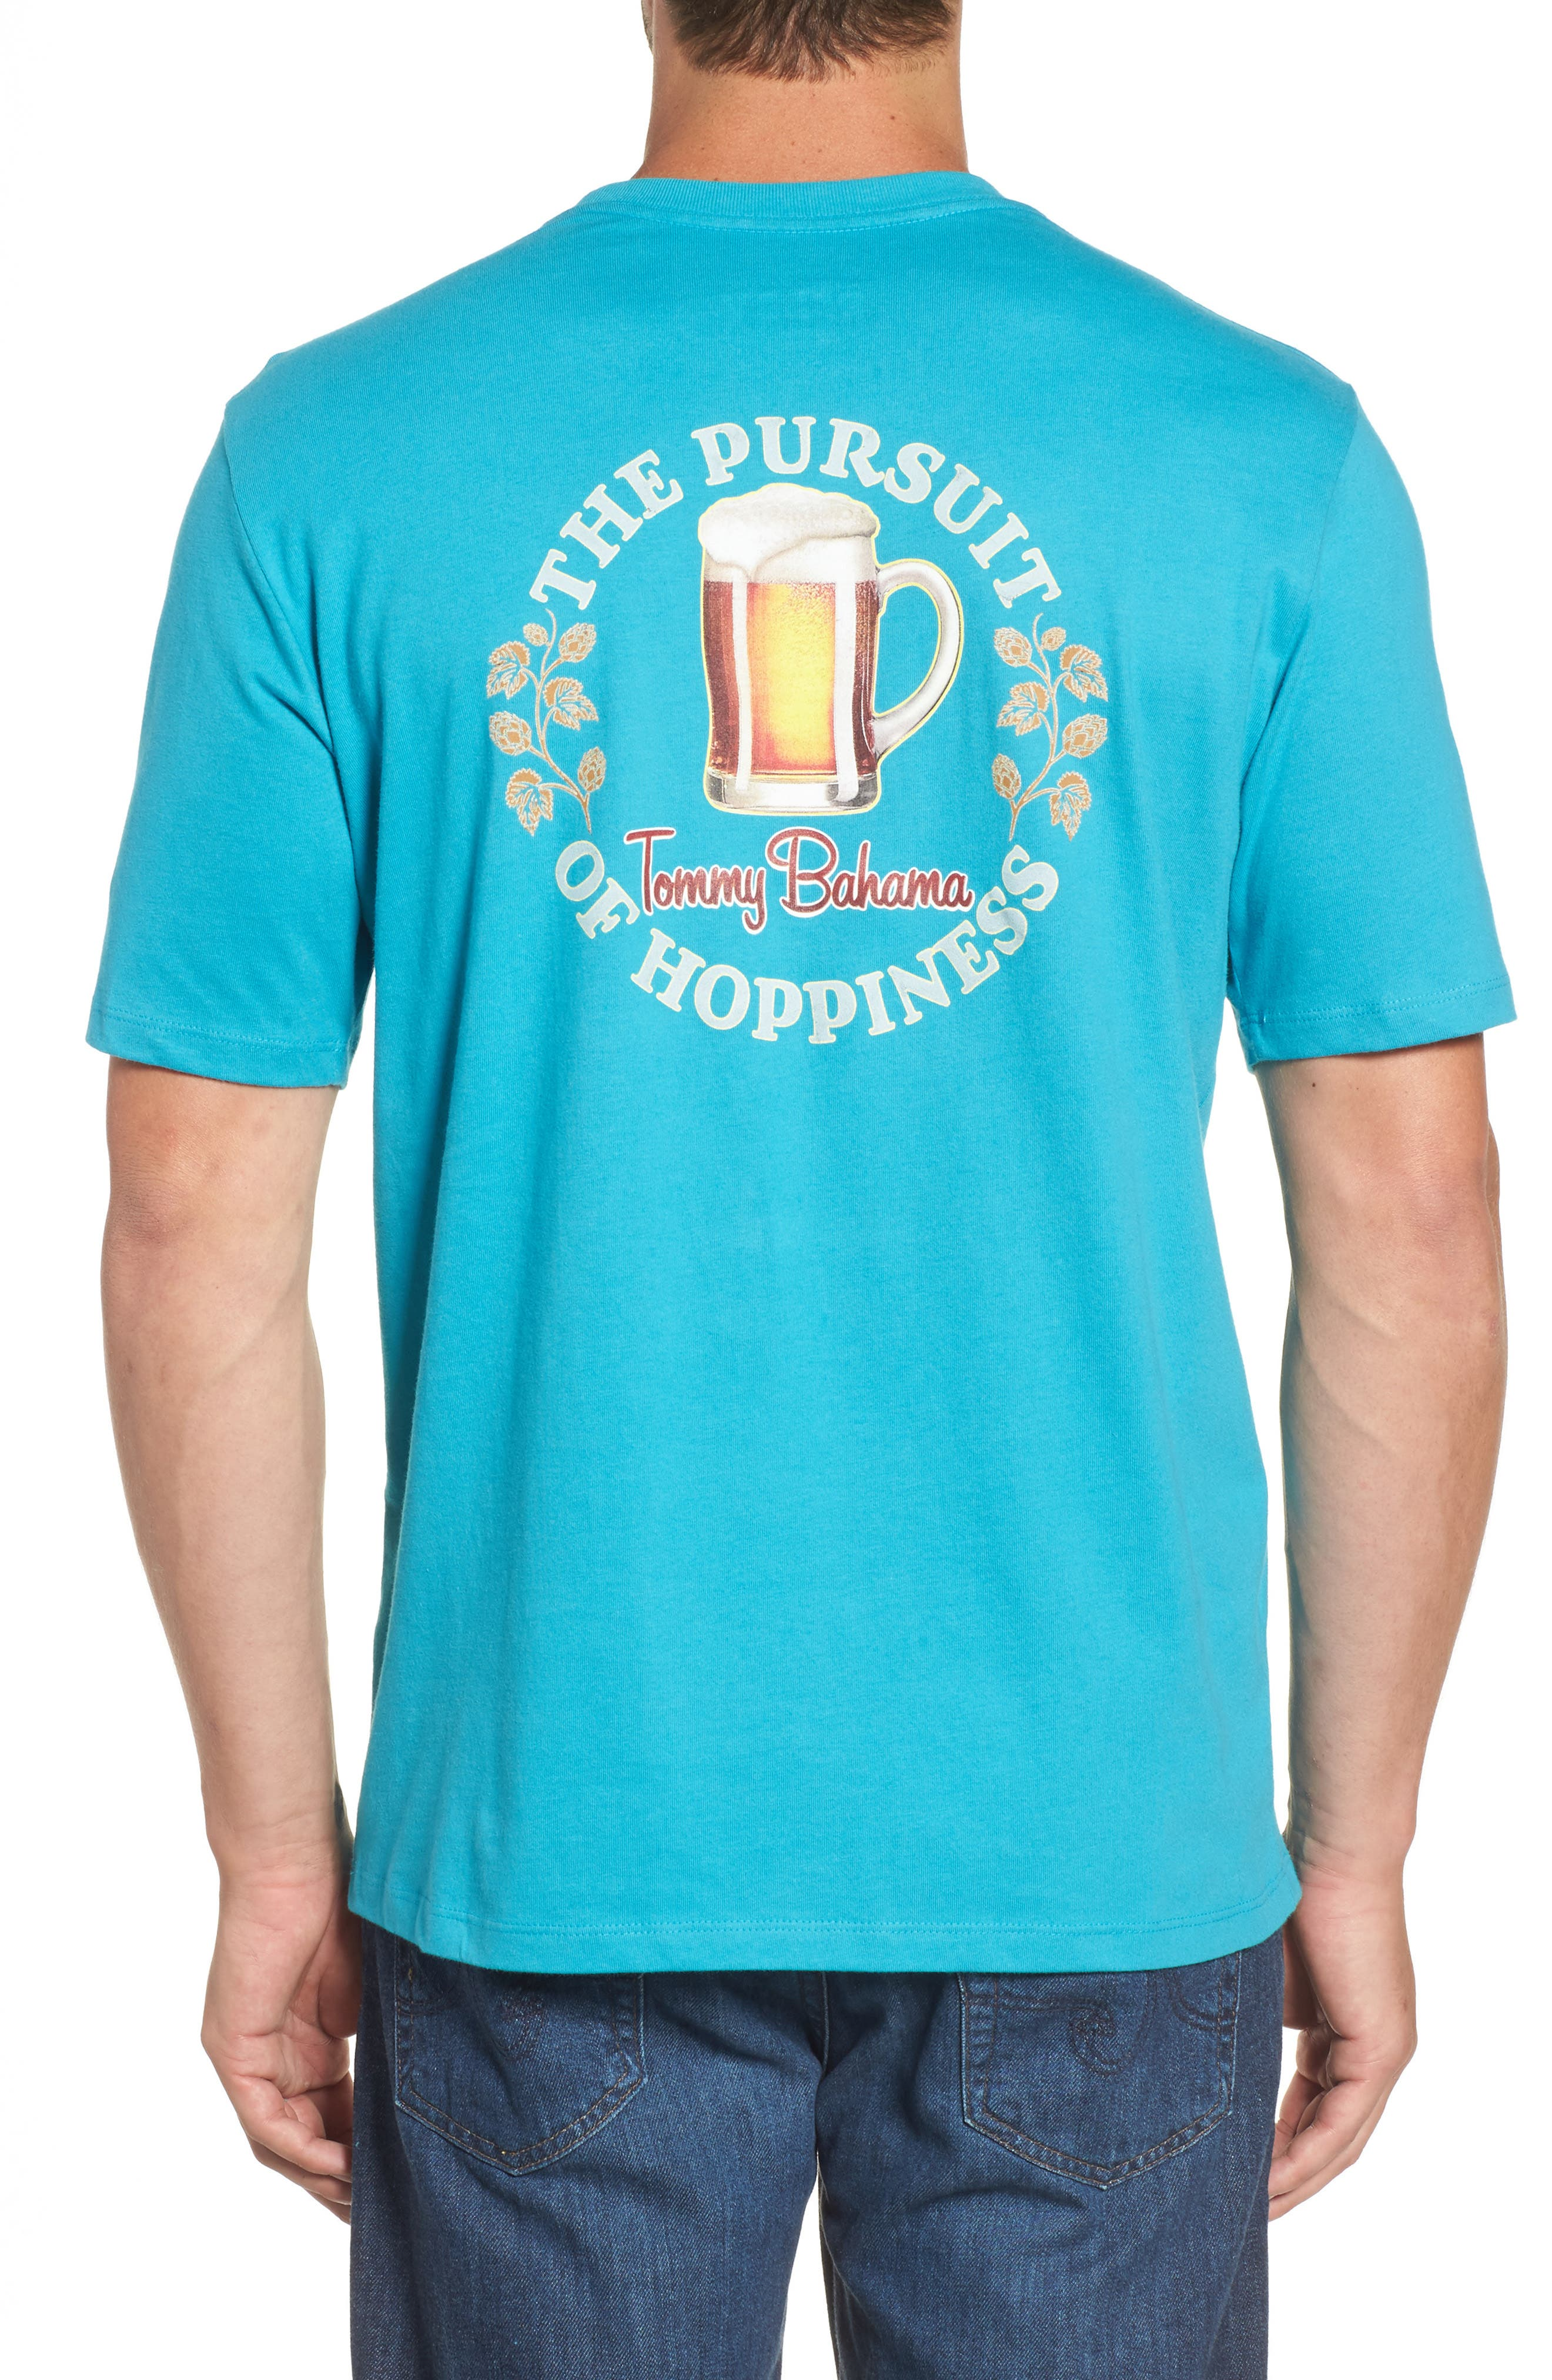 Alternate Image 1 Selected - Tommy Bahama The Pursuit of Hoppiness Graphic T-Shirt